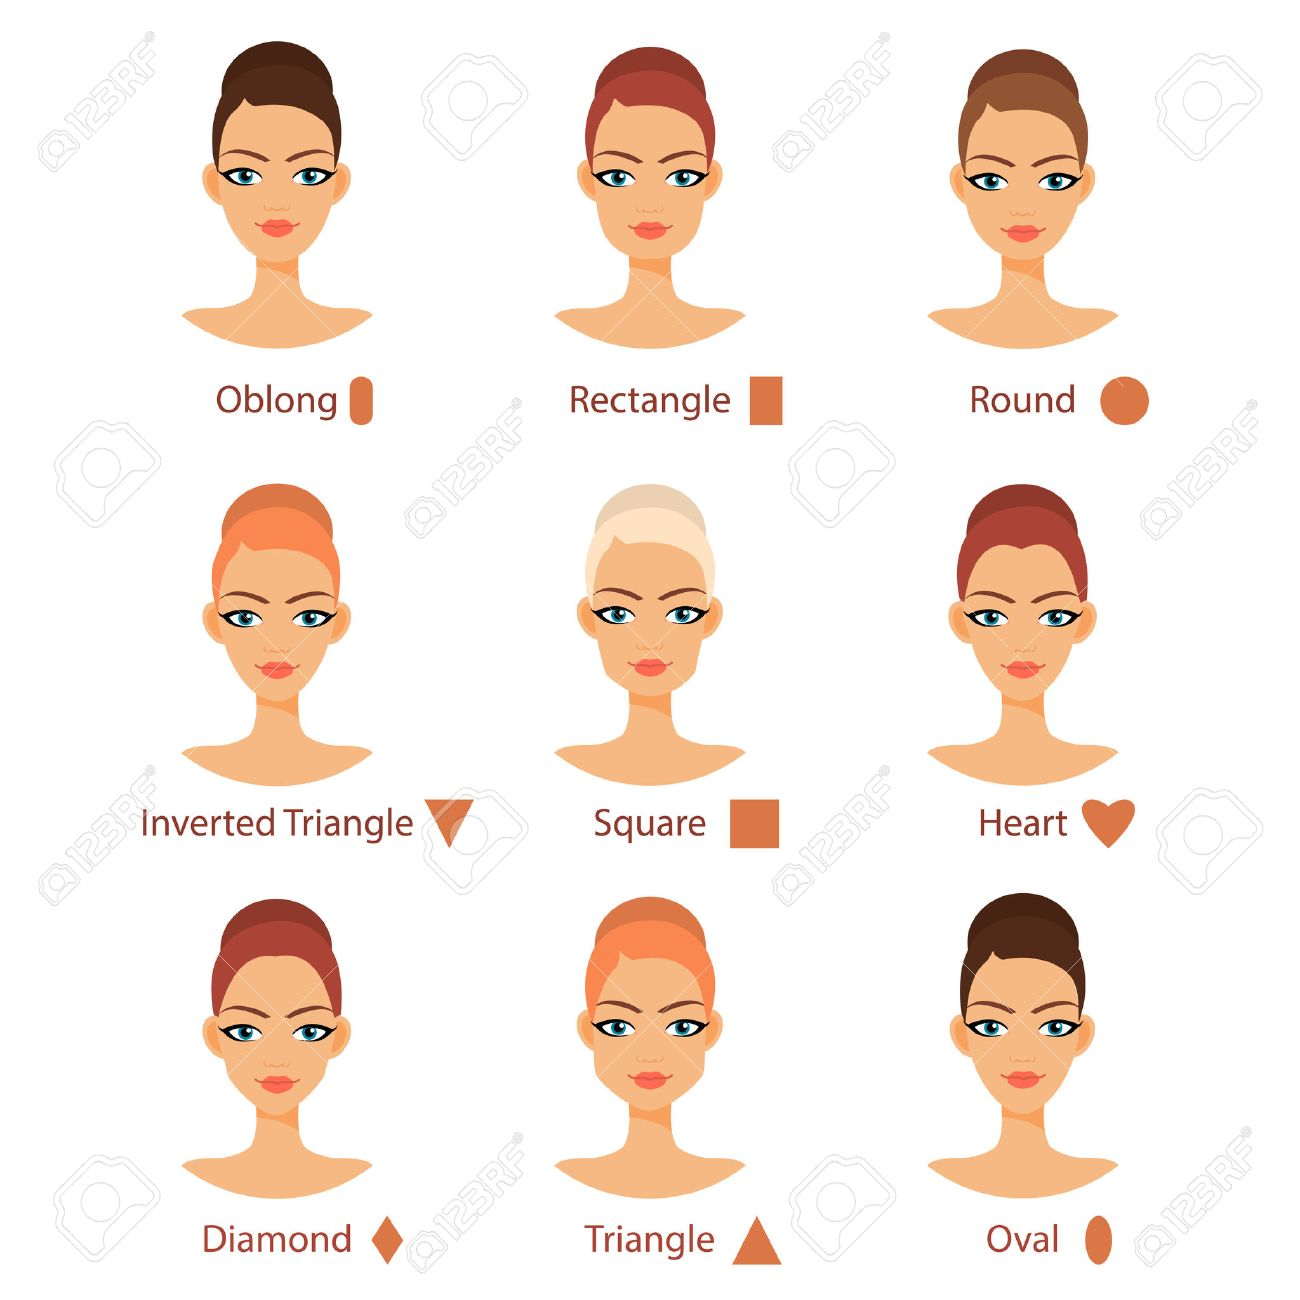 Prime 146 Cheekbones Stock Vector Illustration And Royalty Free Hairstyles For Women Draintrainus